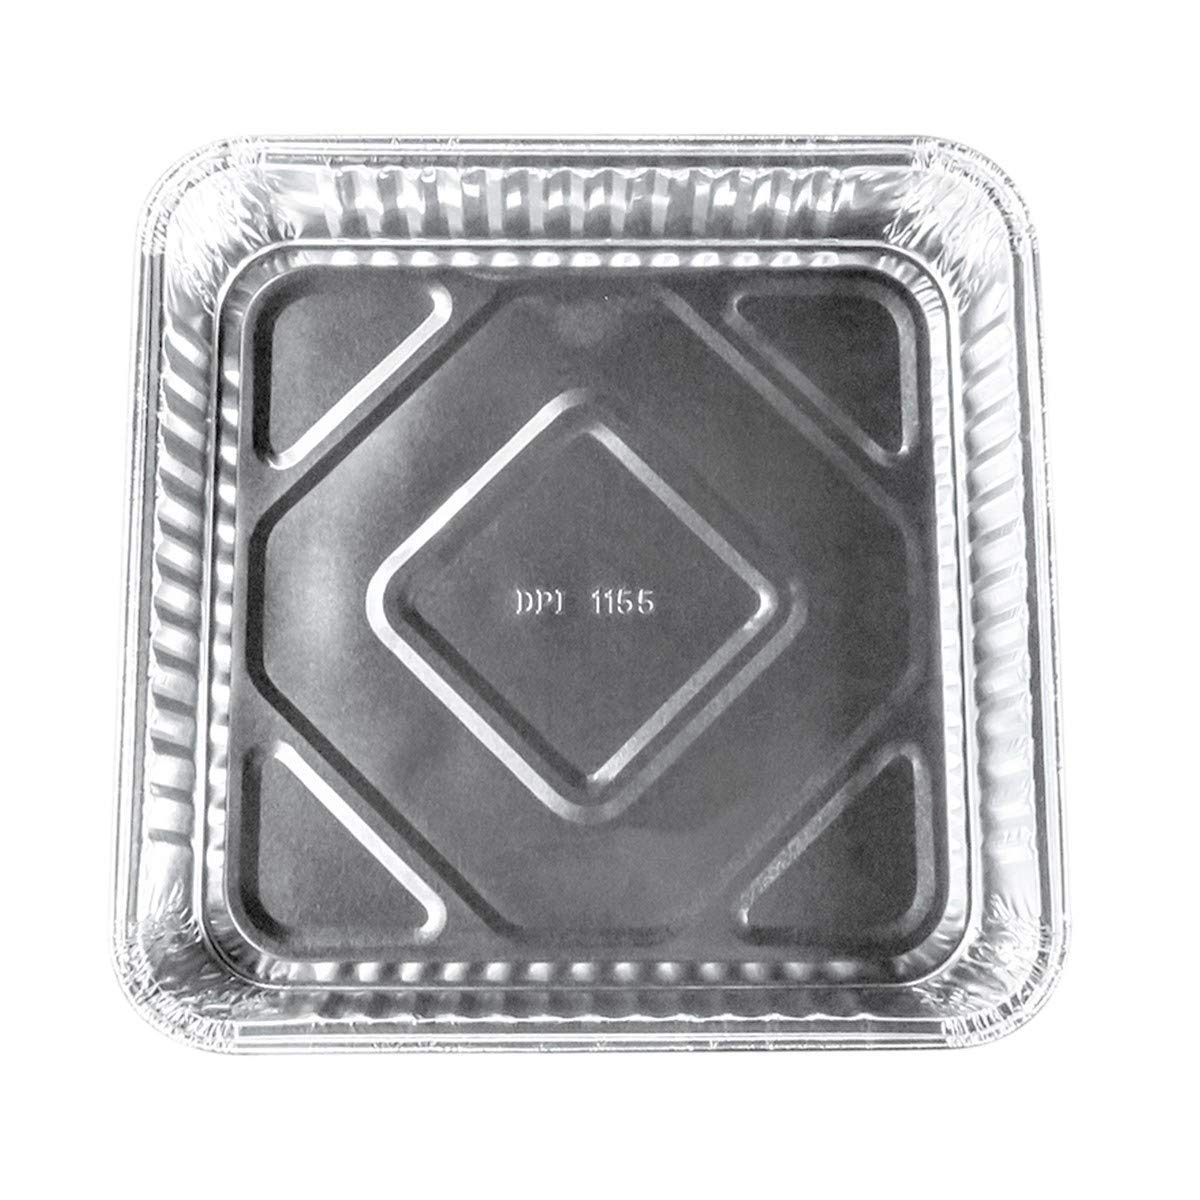 Disposable Aluminum 7-7/8'' x 7-7/8'' Square Cake Pan #1155NL (100) by Durable Packaging